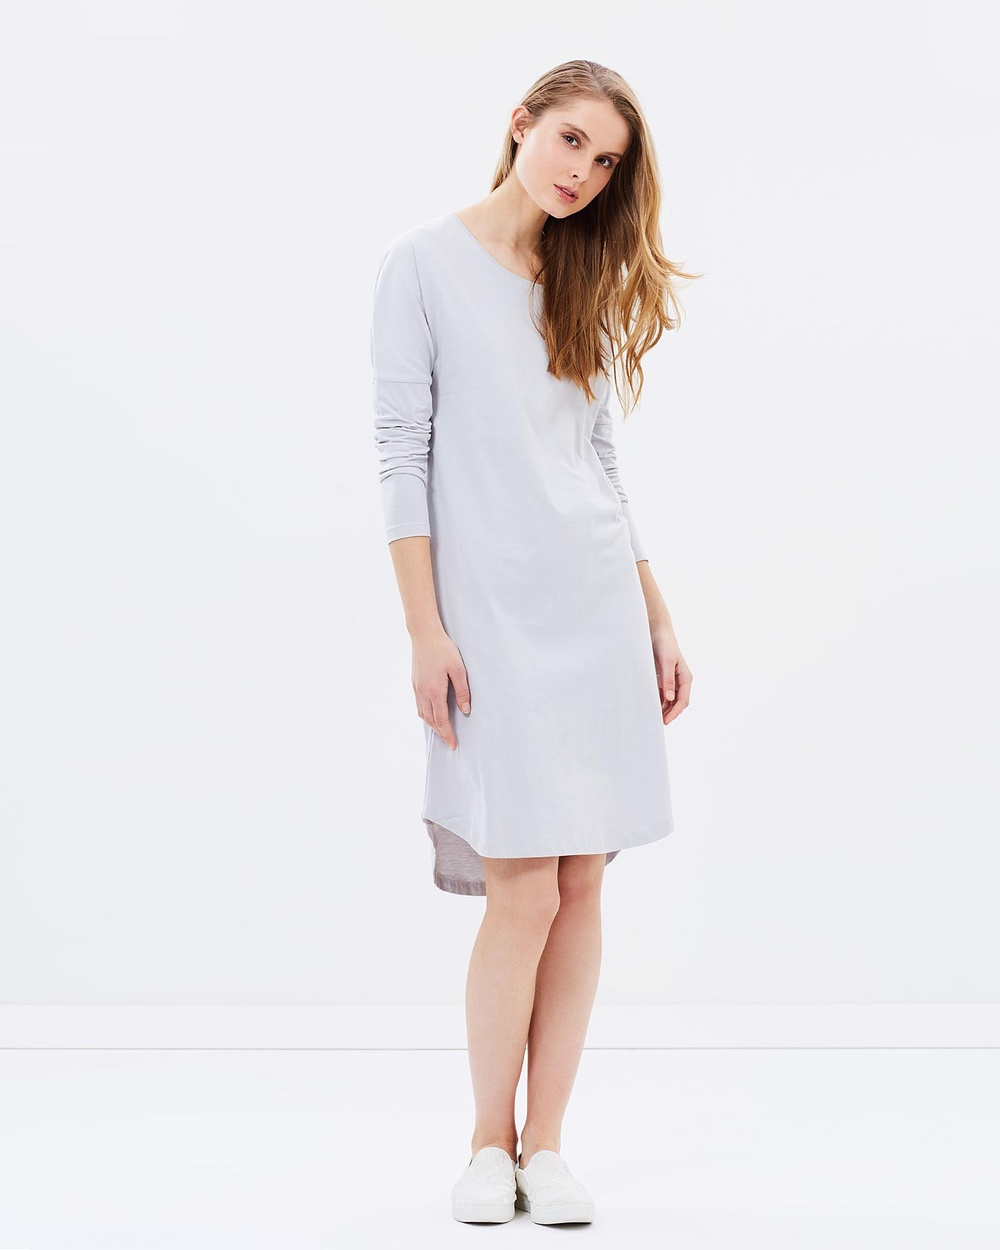 Cloth & Co. Organic Cotton Long Sleeve Dress Dresses Dove Grey Organic Cotton Long Sleeve Dress